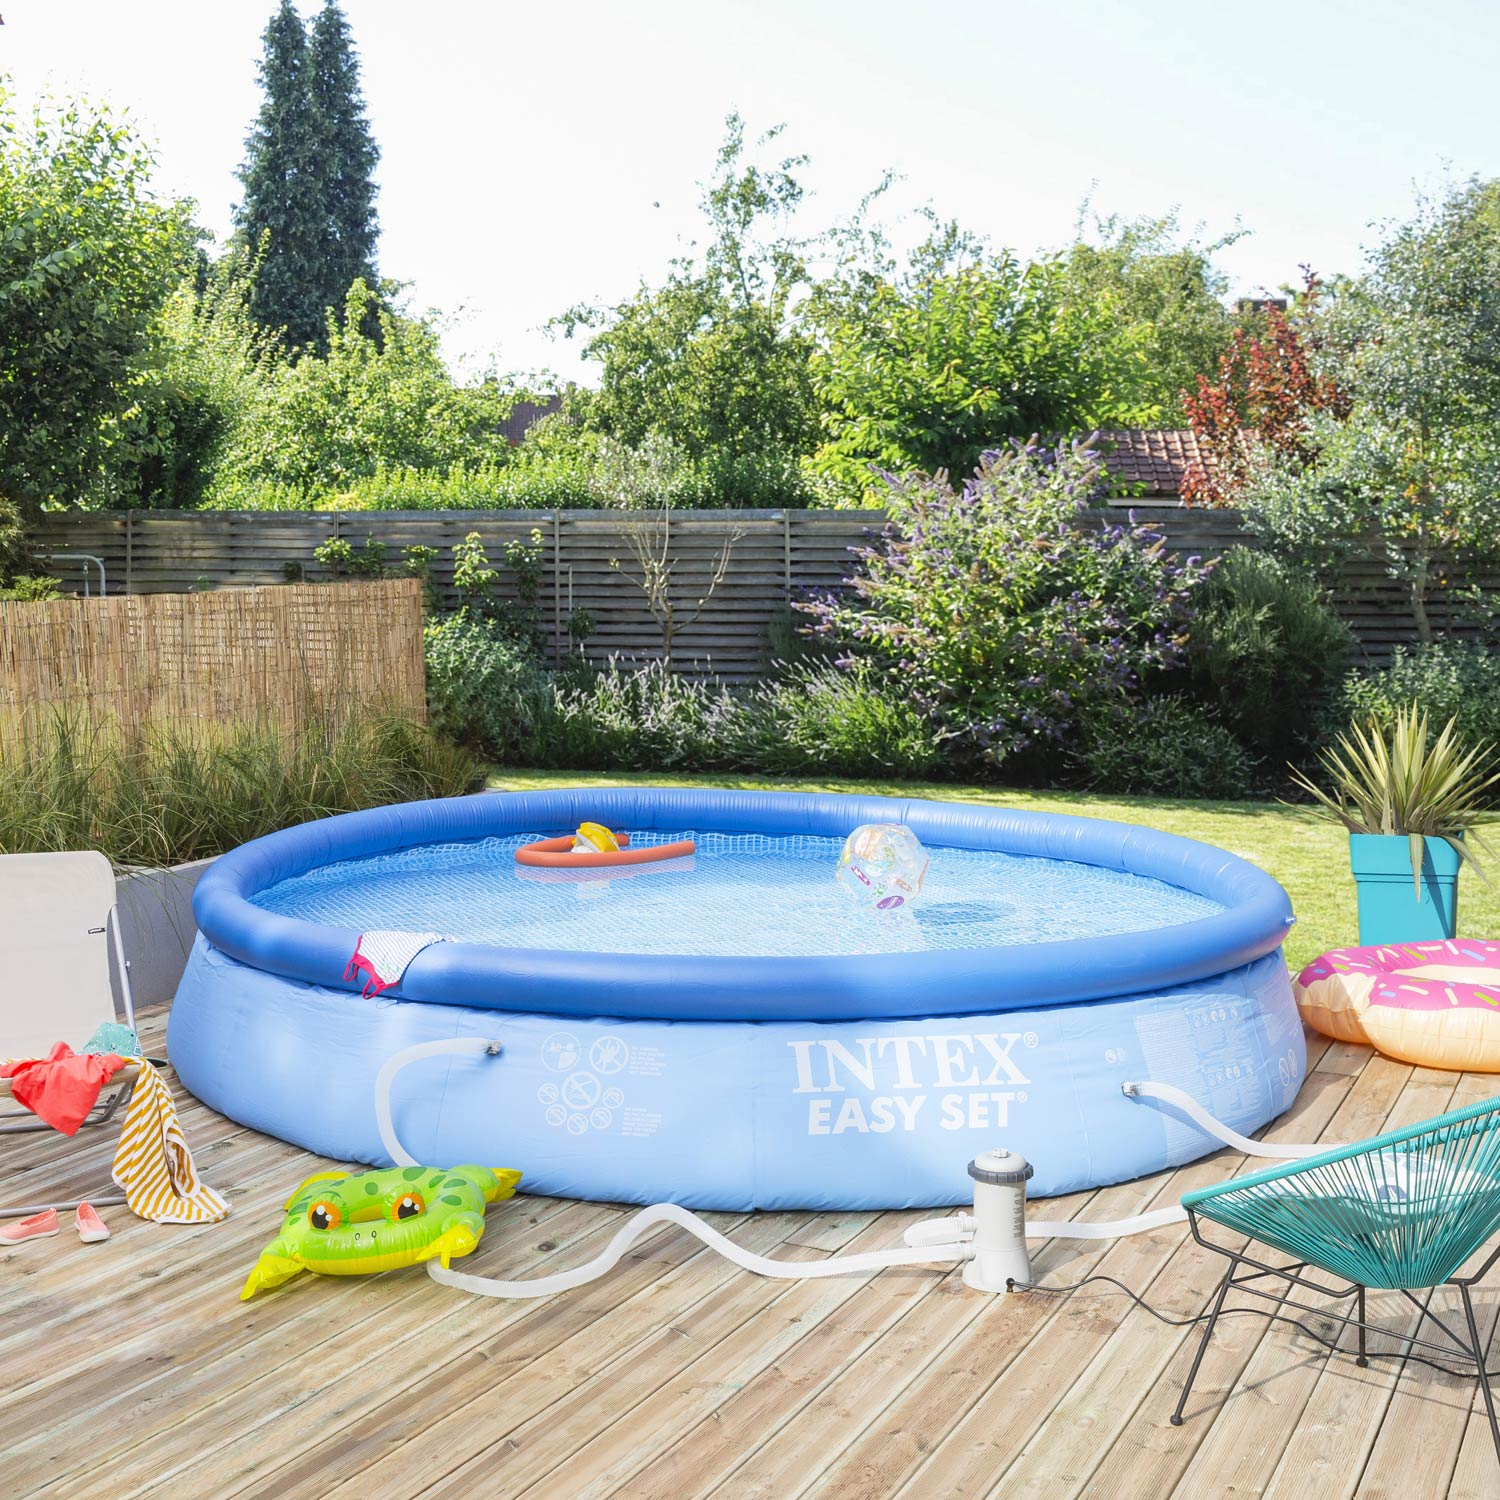 Piscine hors sol autoportante gonflable easy set intex - Piscine hors sol luxe ...